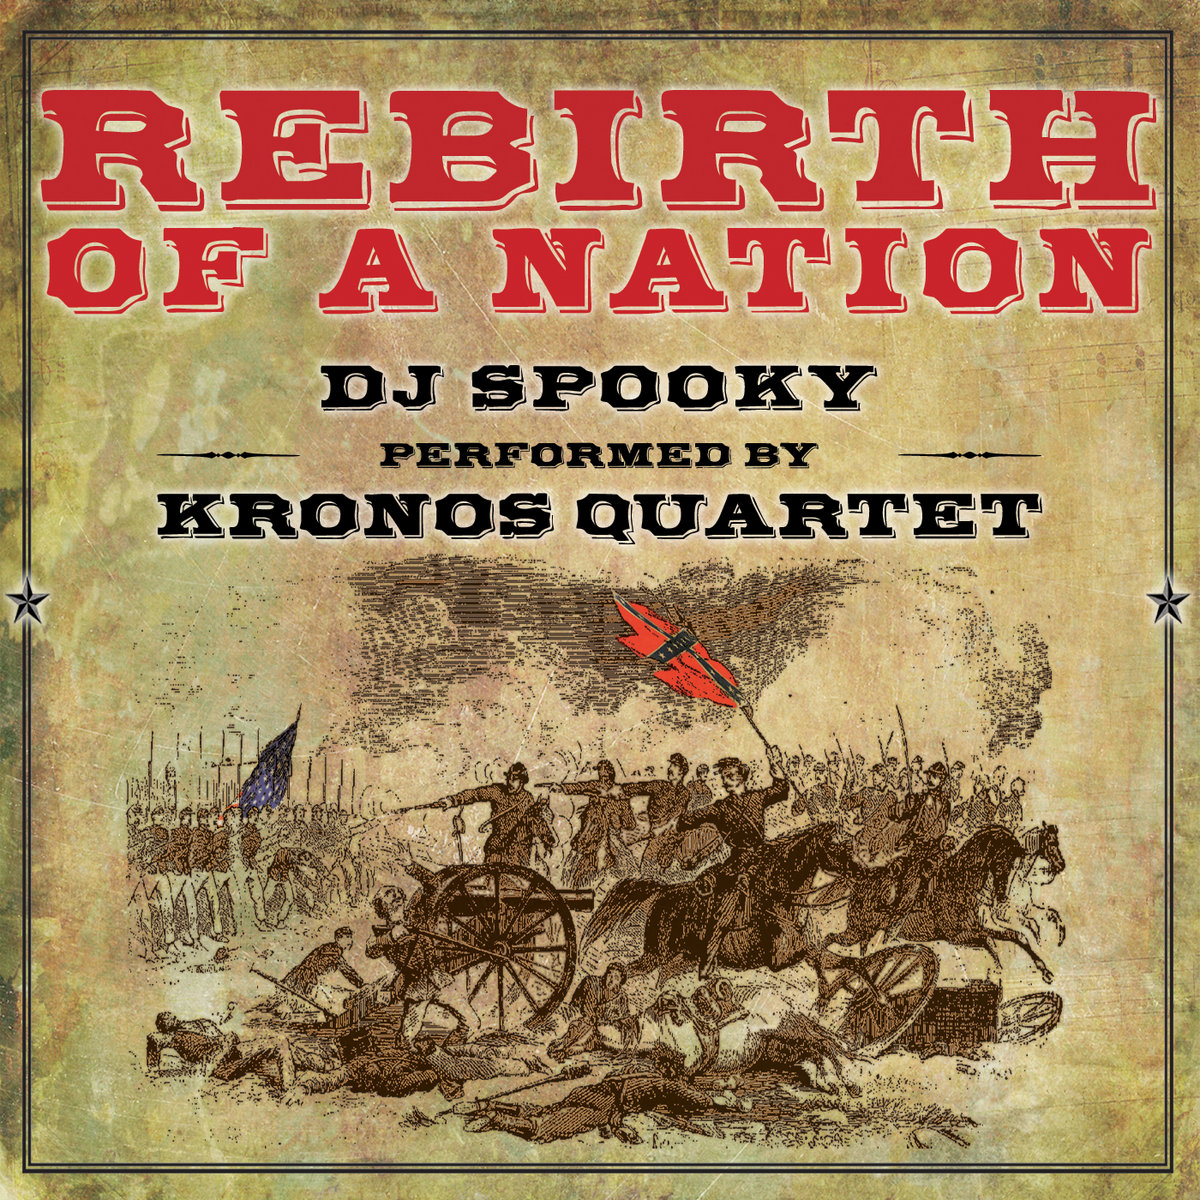 The Most Dangerous Woman In America  Cantaloupe Music From Rebirth Of A Nation By Dj Spooky W Kronos Quartet